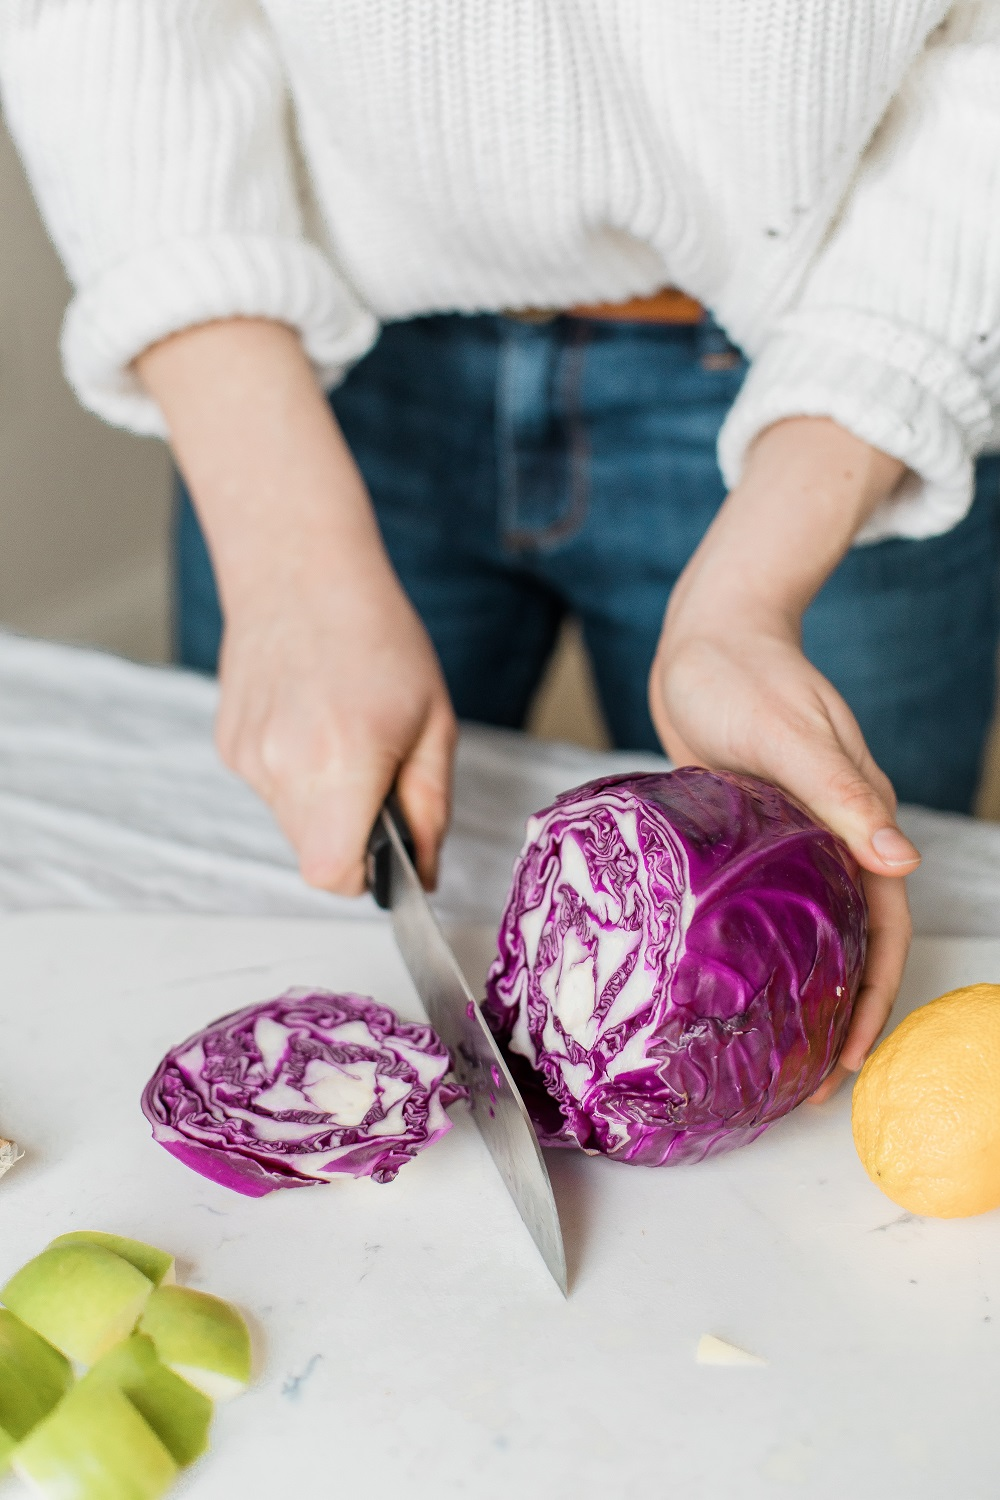 Beat the post-holiday eating blues with these quick and easy meal prep ideas. It can be hard to get back into the routine and healthy eating after a few days or weeks of eating whenever you like and maybe whatever you like too! But with these meal prep ideas your healthy eating will be back on track in no time. midlifemenu.com/blog/meal-prep-ideas